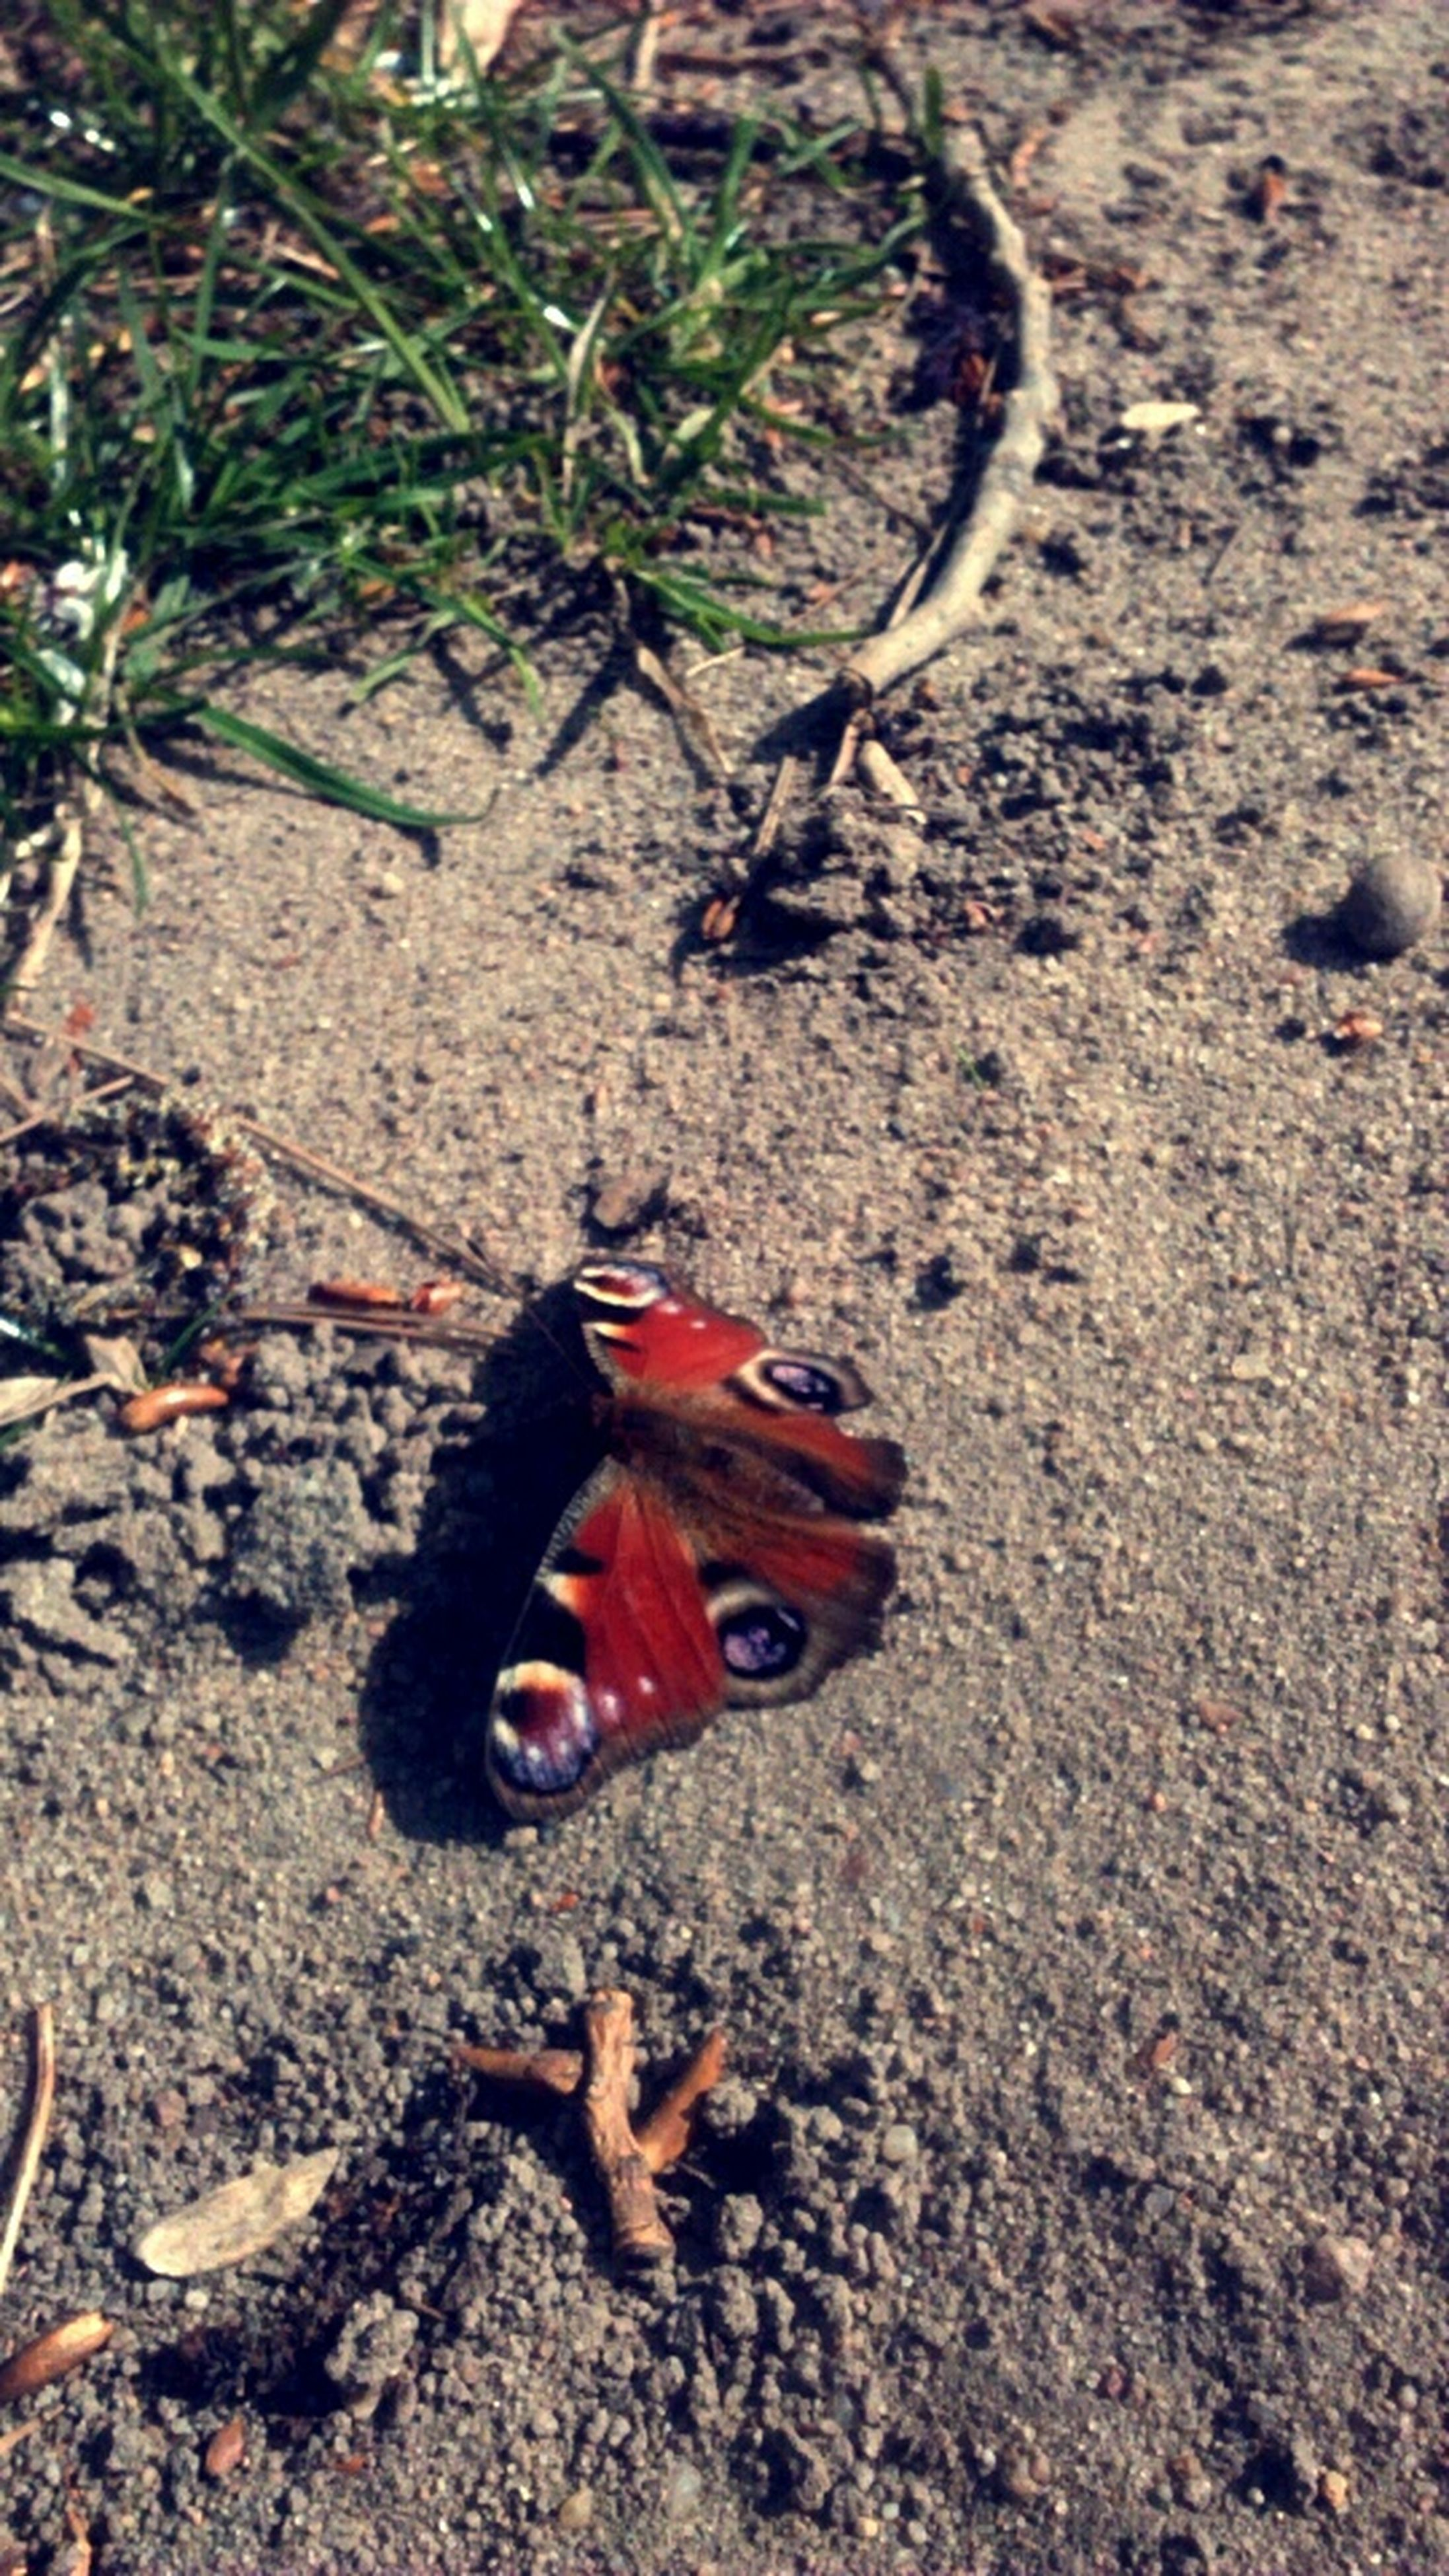 high angle view, red, ground, sand, close-up, abandoned, outdoors, street, day, sunlight, no people, dirt, field, nature, one animal, single object, animal themes, dead animal, still life, leaf